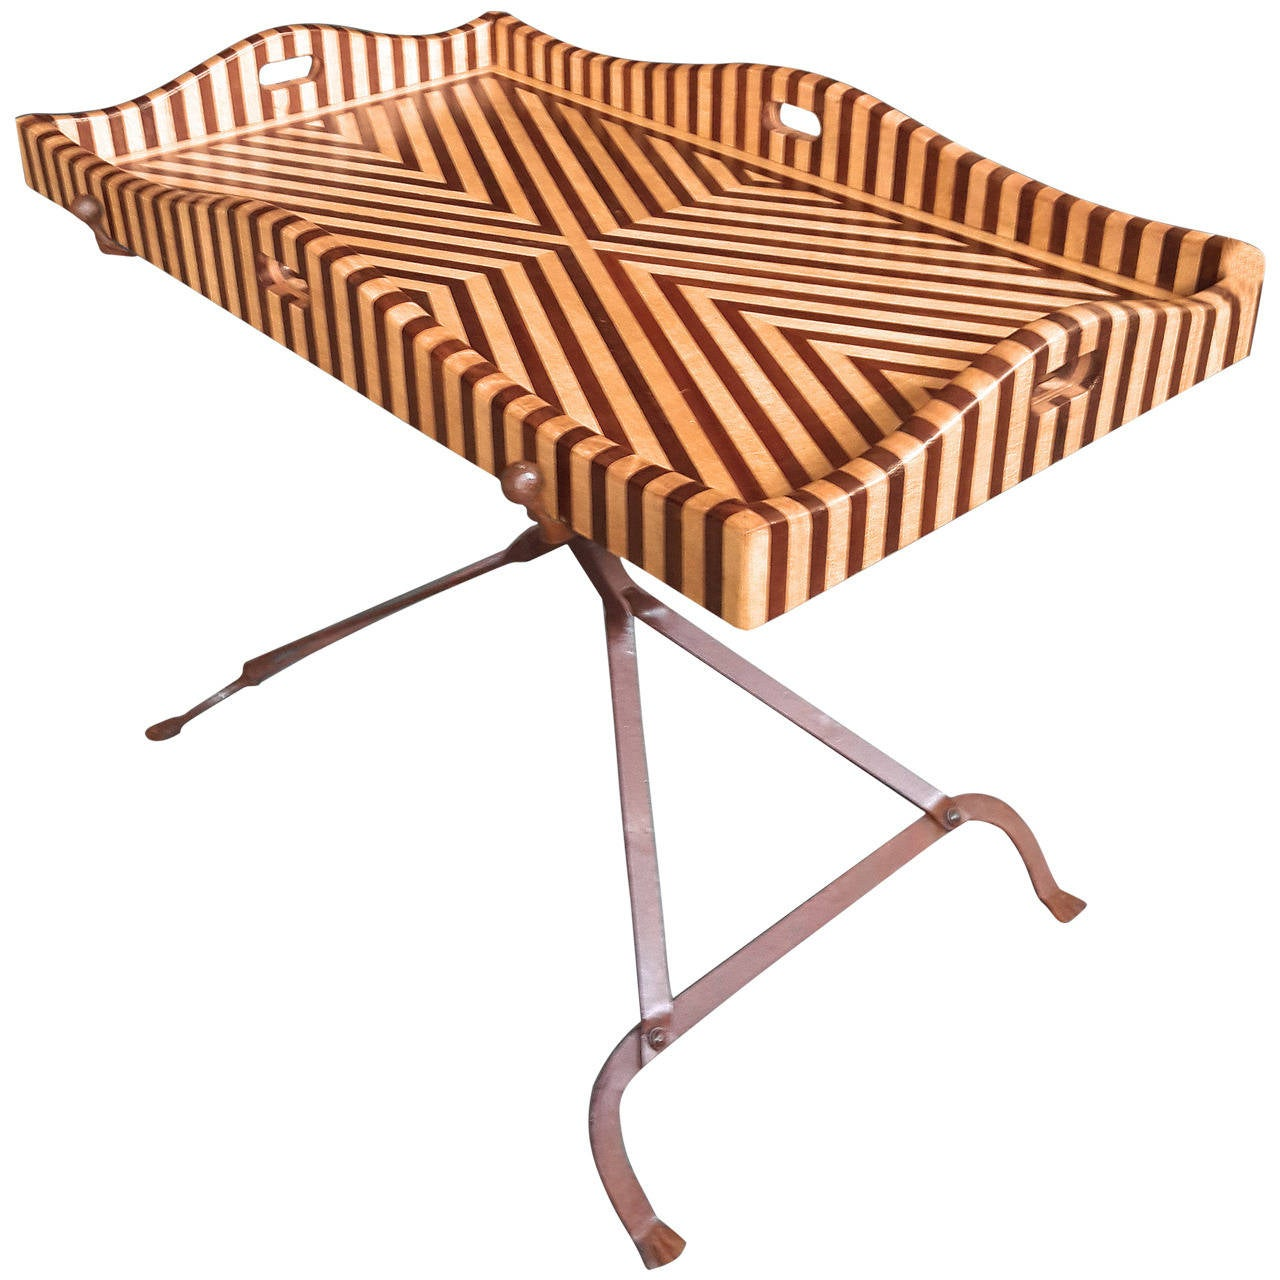 Striped Hard Wood Tray Table on Aged Steel Base, Design by Bill Willis